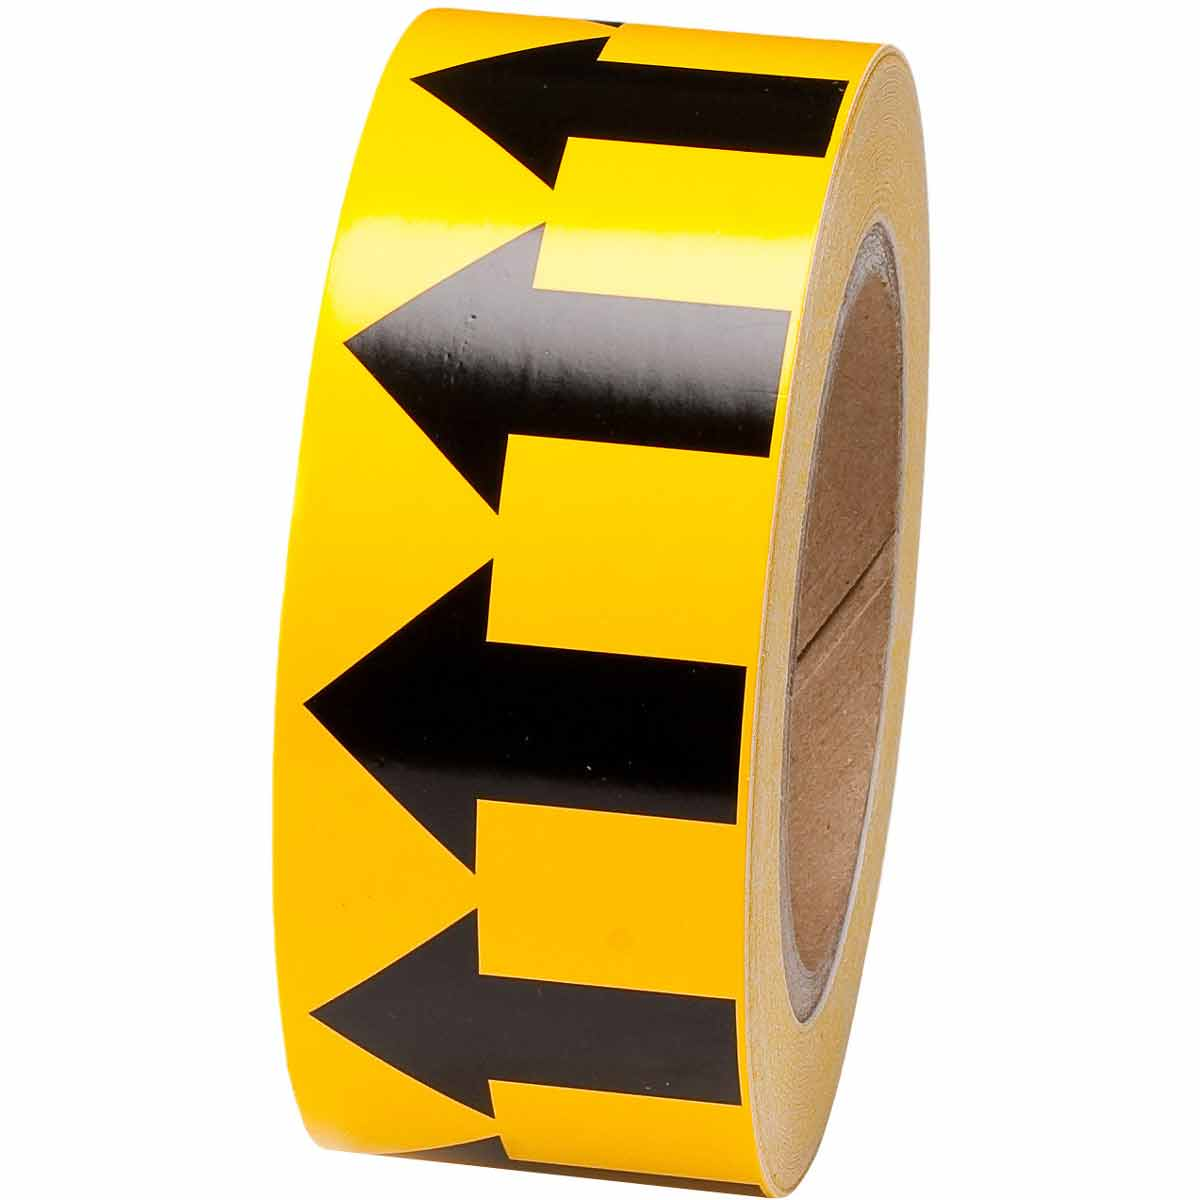 BRADY 91420 ARROW TAPE